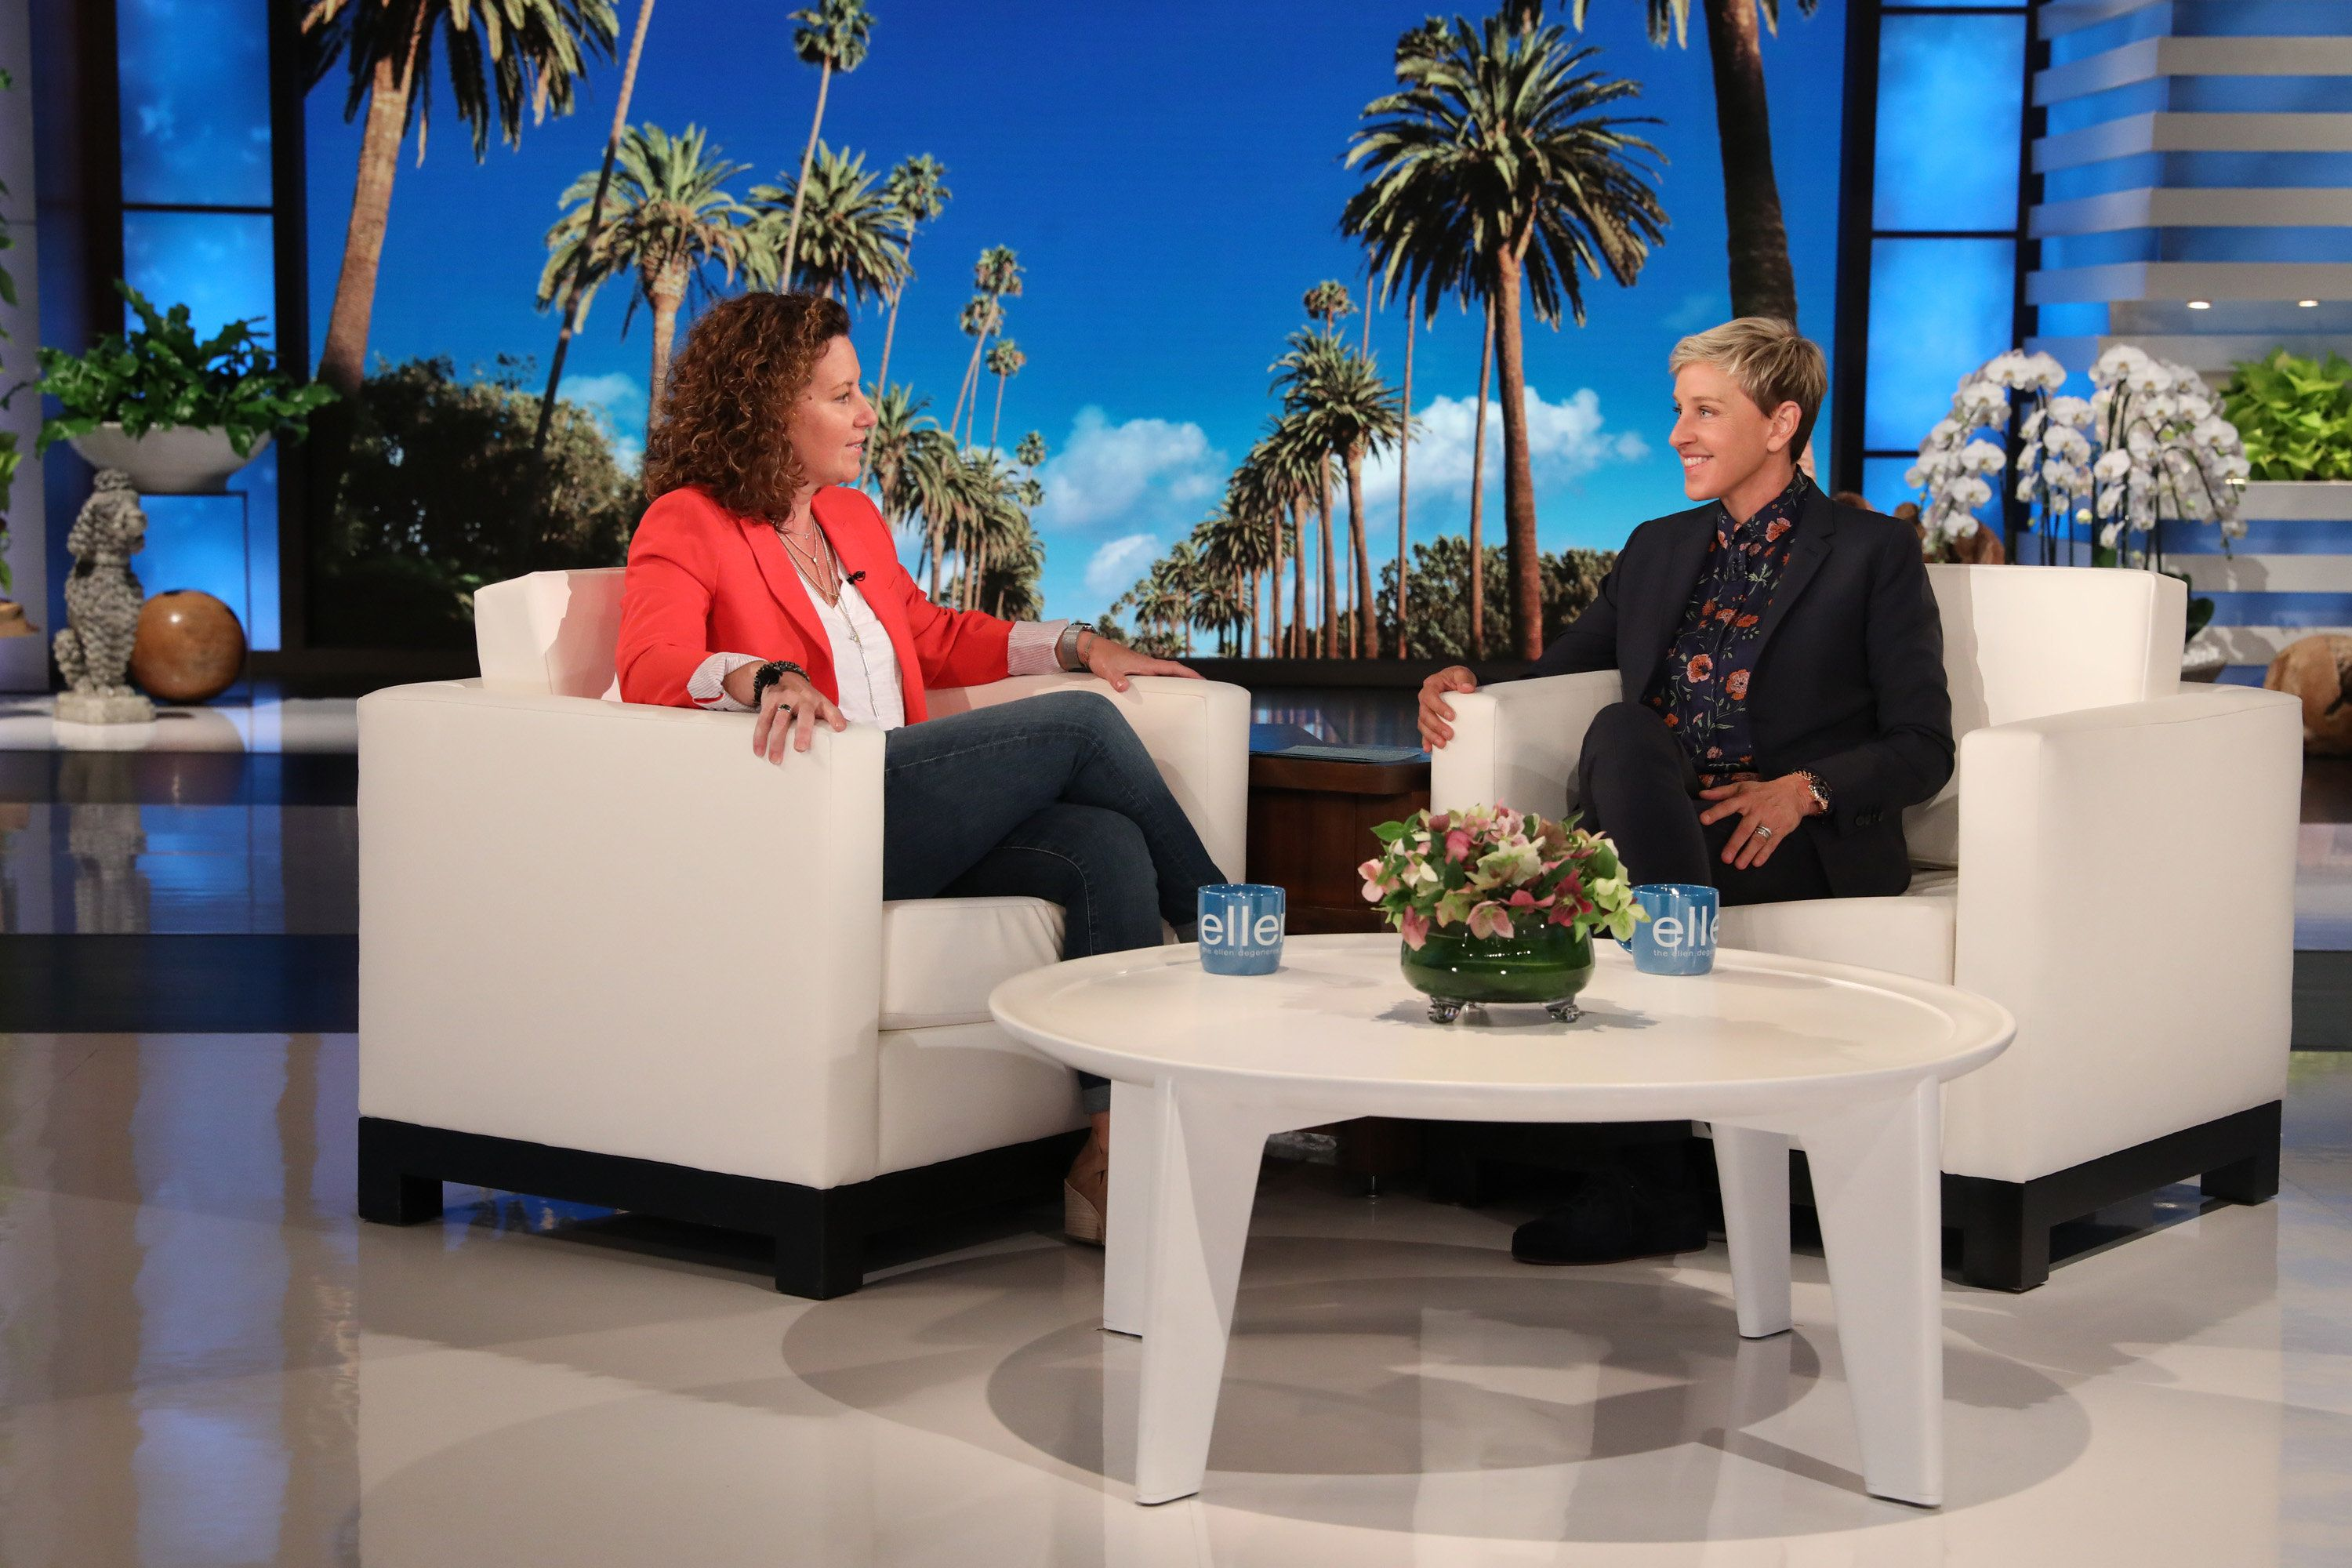 Ellen DeGeneres Meets School Counselor Who May Be Fired For Her Same-Sex